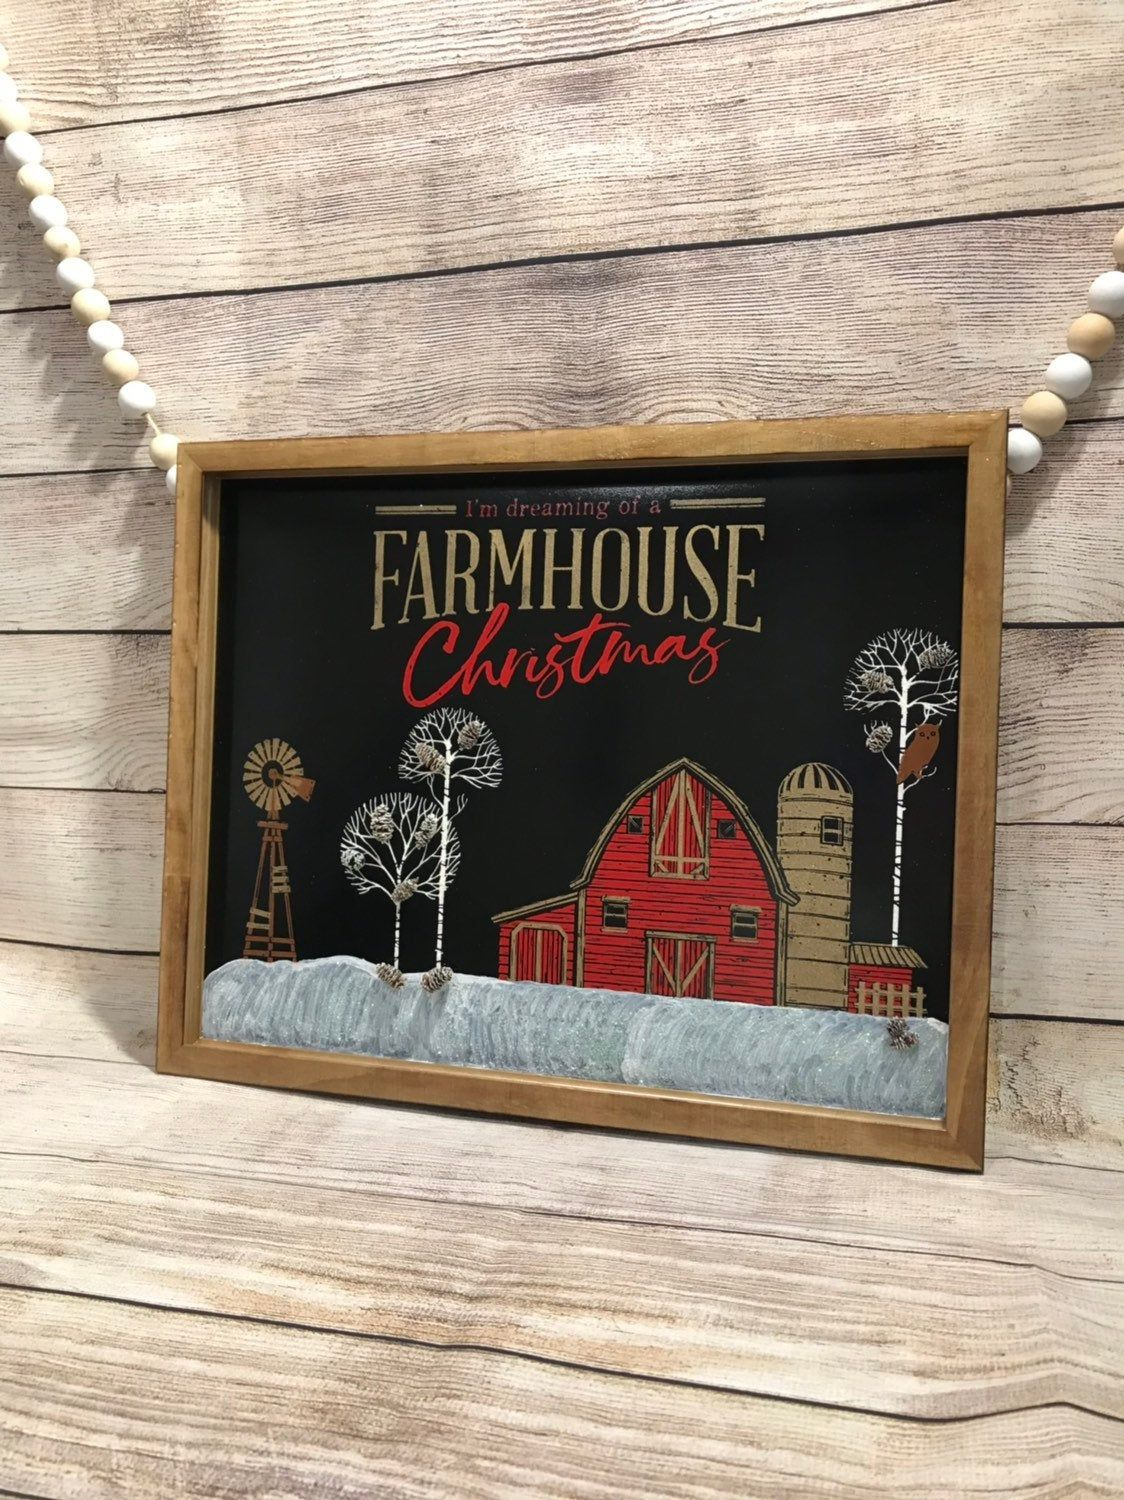 Christmas Decor Farmhouse Christmas Christmas Chalkboard Chalk Couture In 2020 Chalk Crafts Chalkboard Crafts Christmas Chalkboard